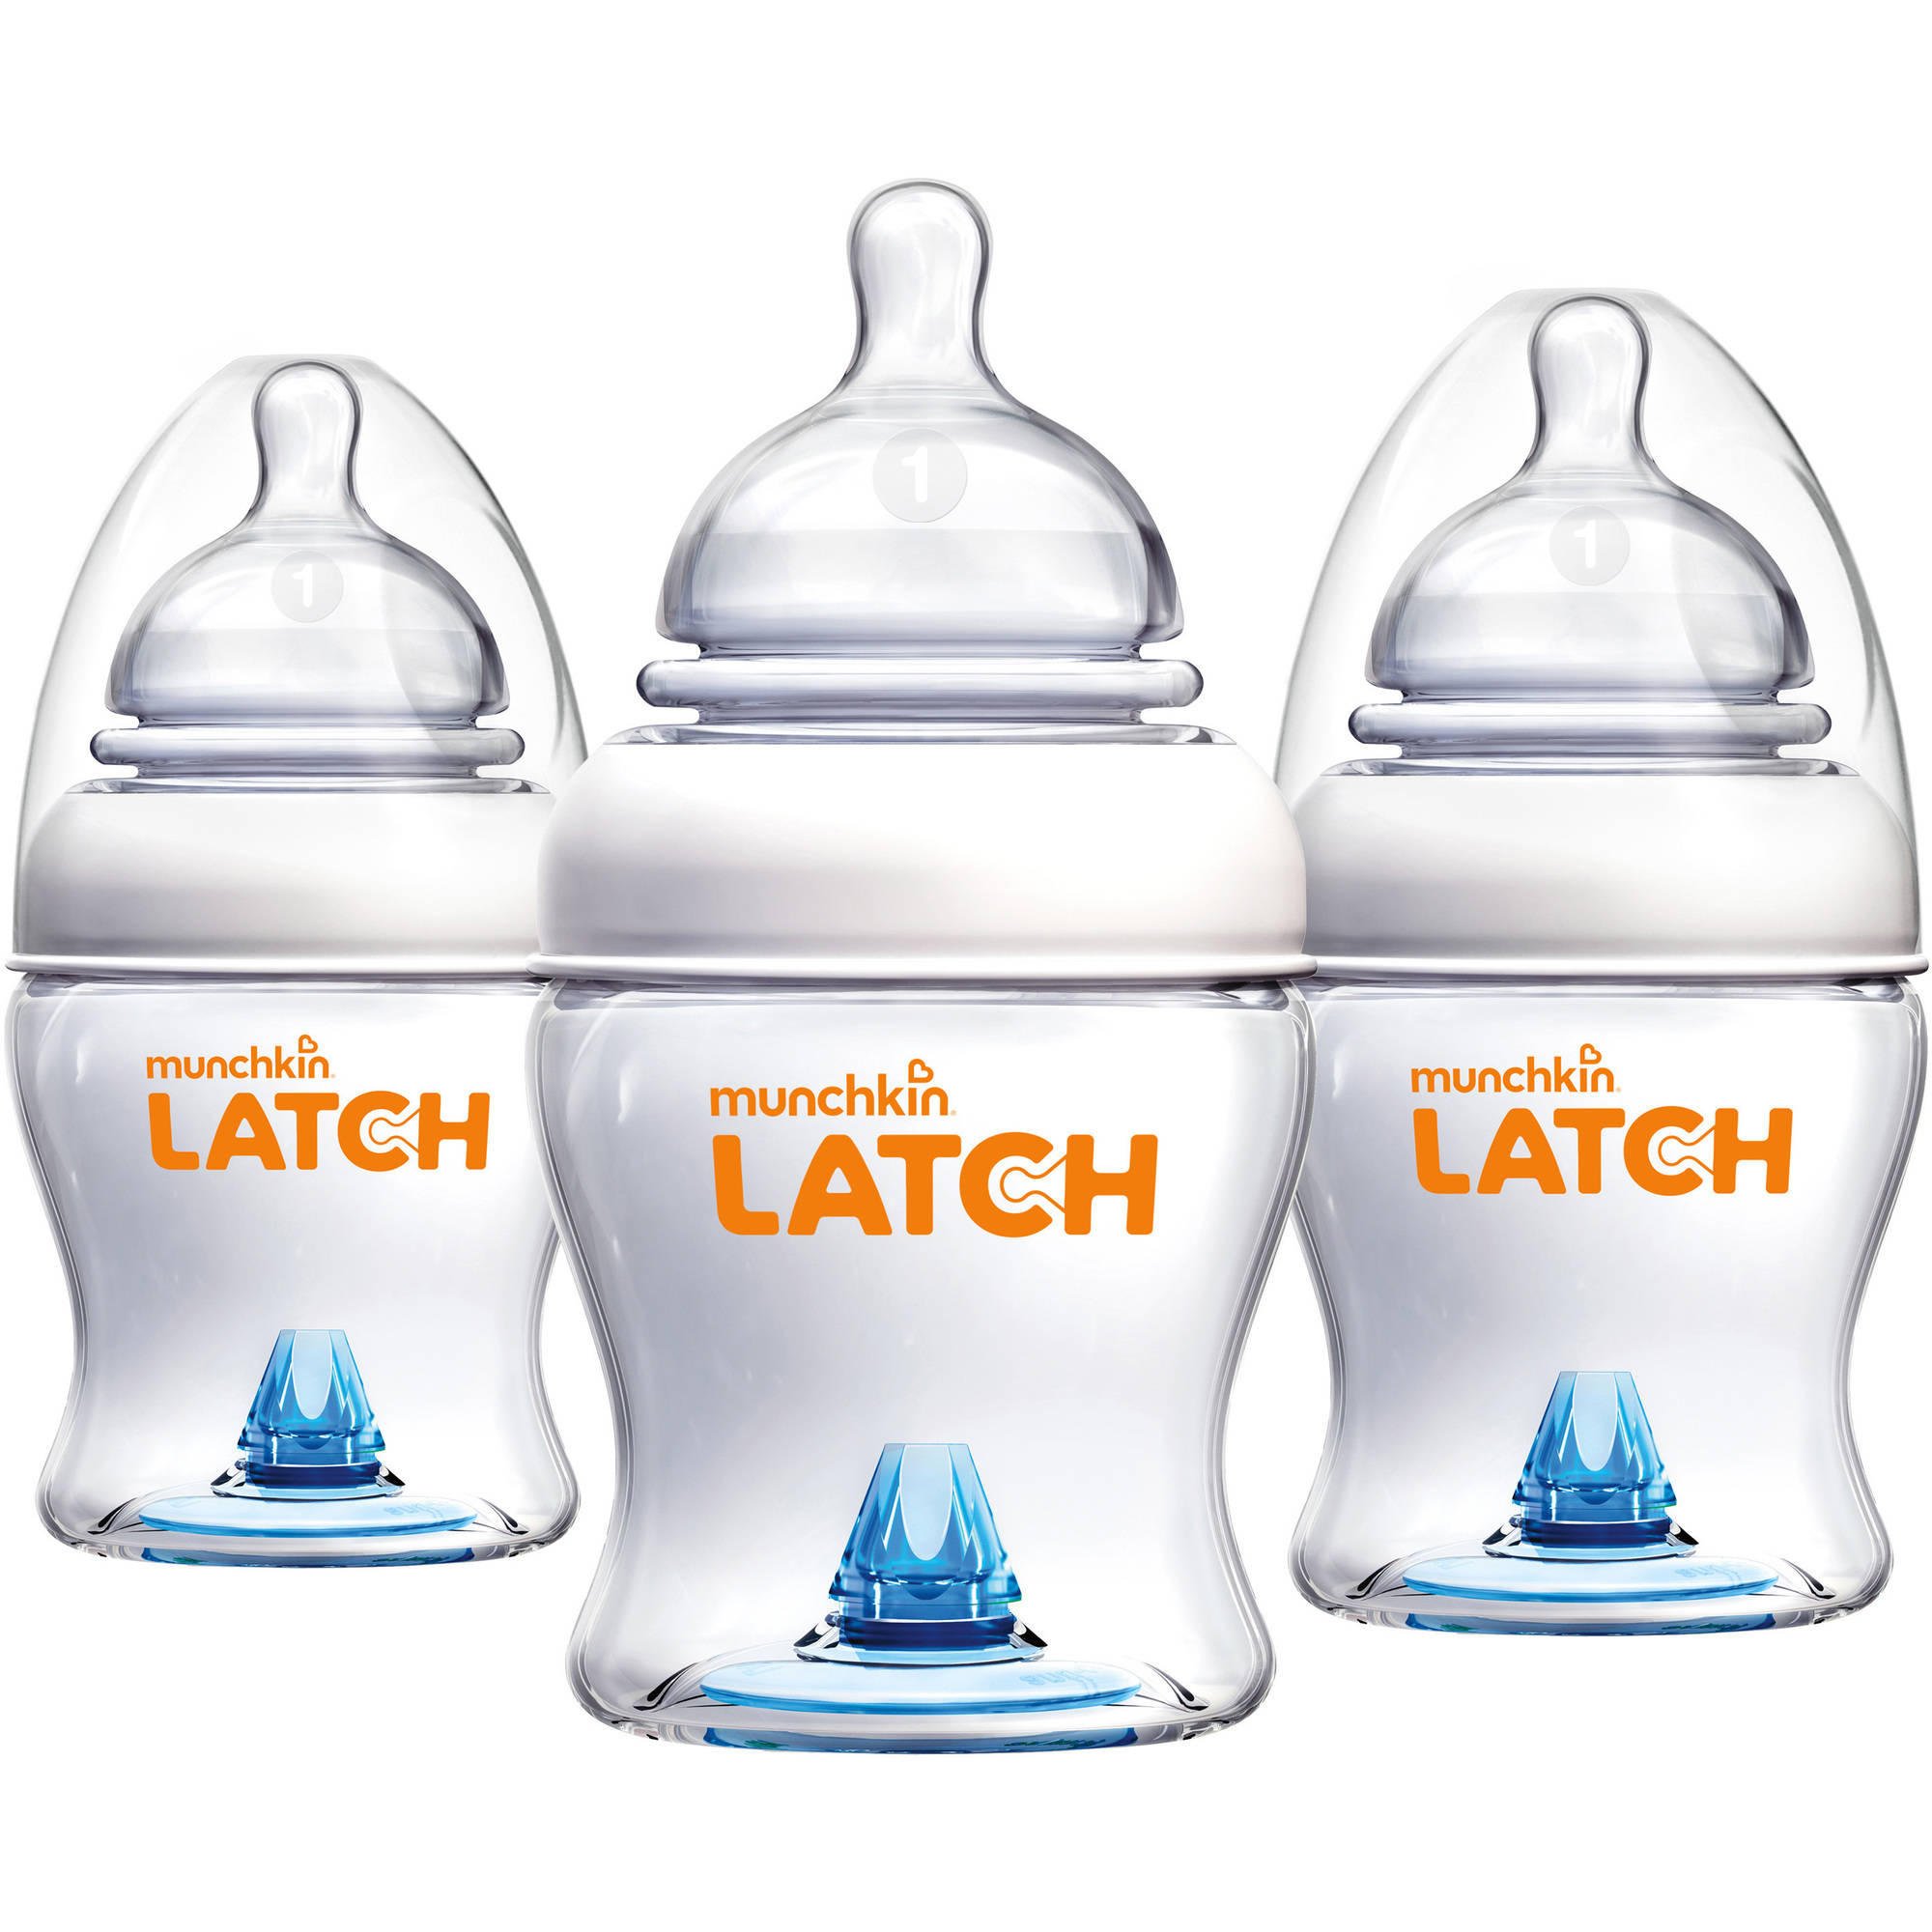 Munchkin LATCH 4 oz Baby Bottle, 3pk